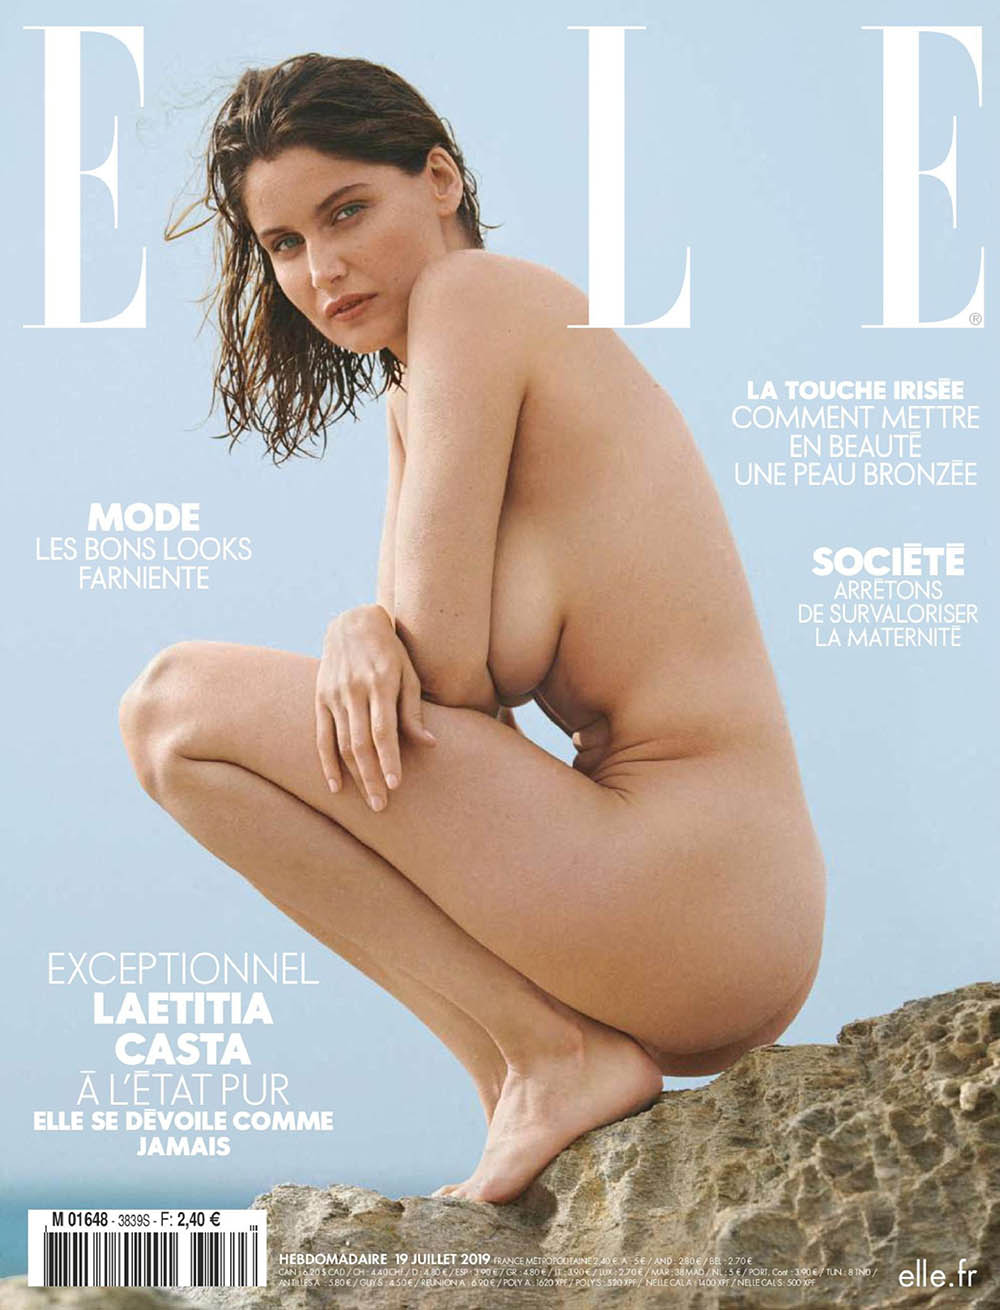 Laetitia-Casta-covers-Elle-France-July-19th-2019-by-Blair-Getz-Mezibov-1.jpg